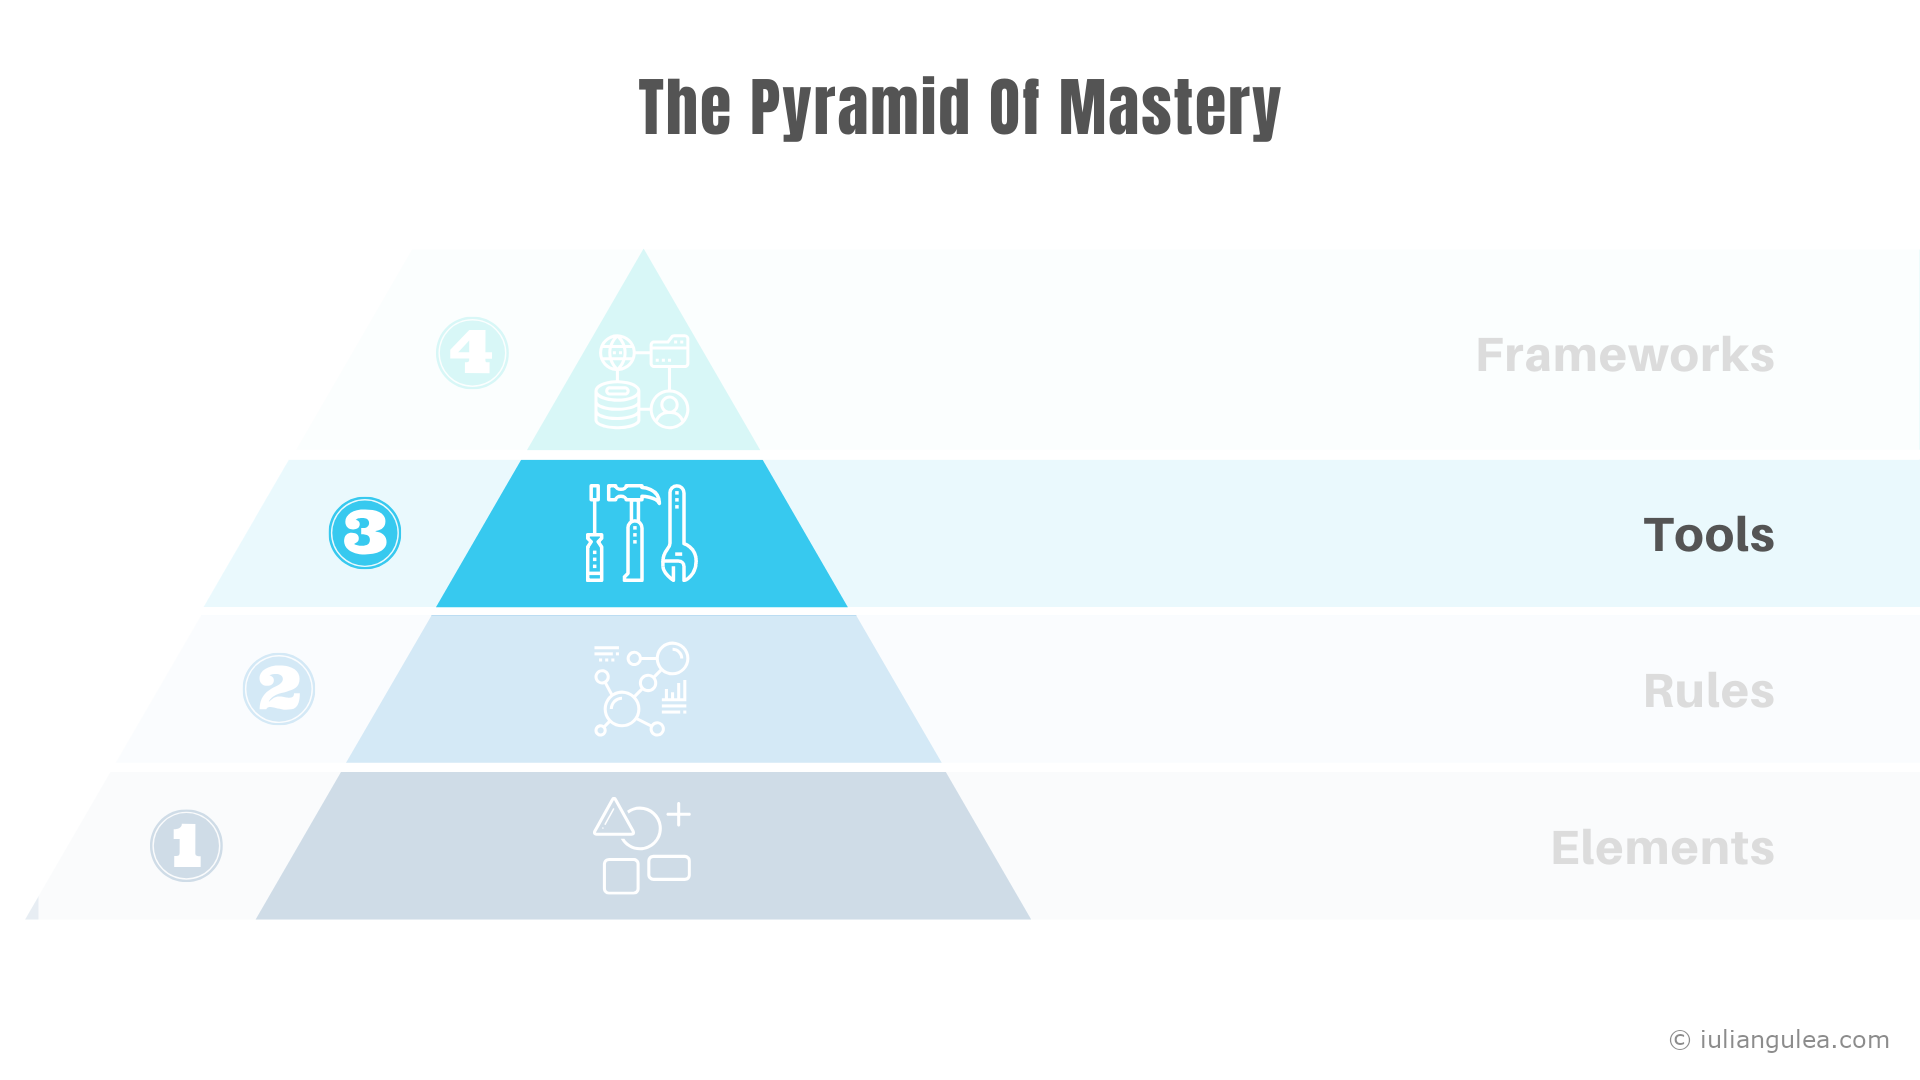 The Pyramid Of Mastery - The Tools